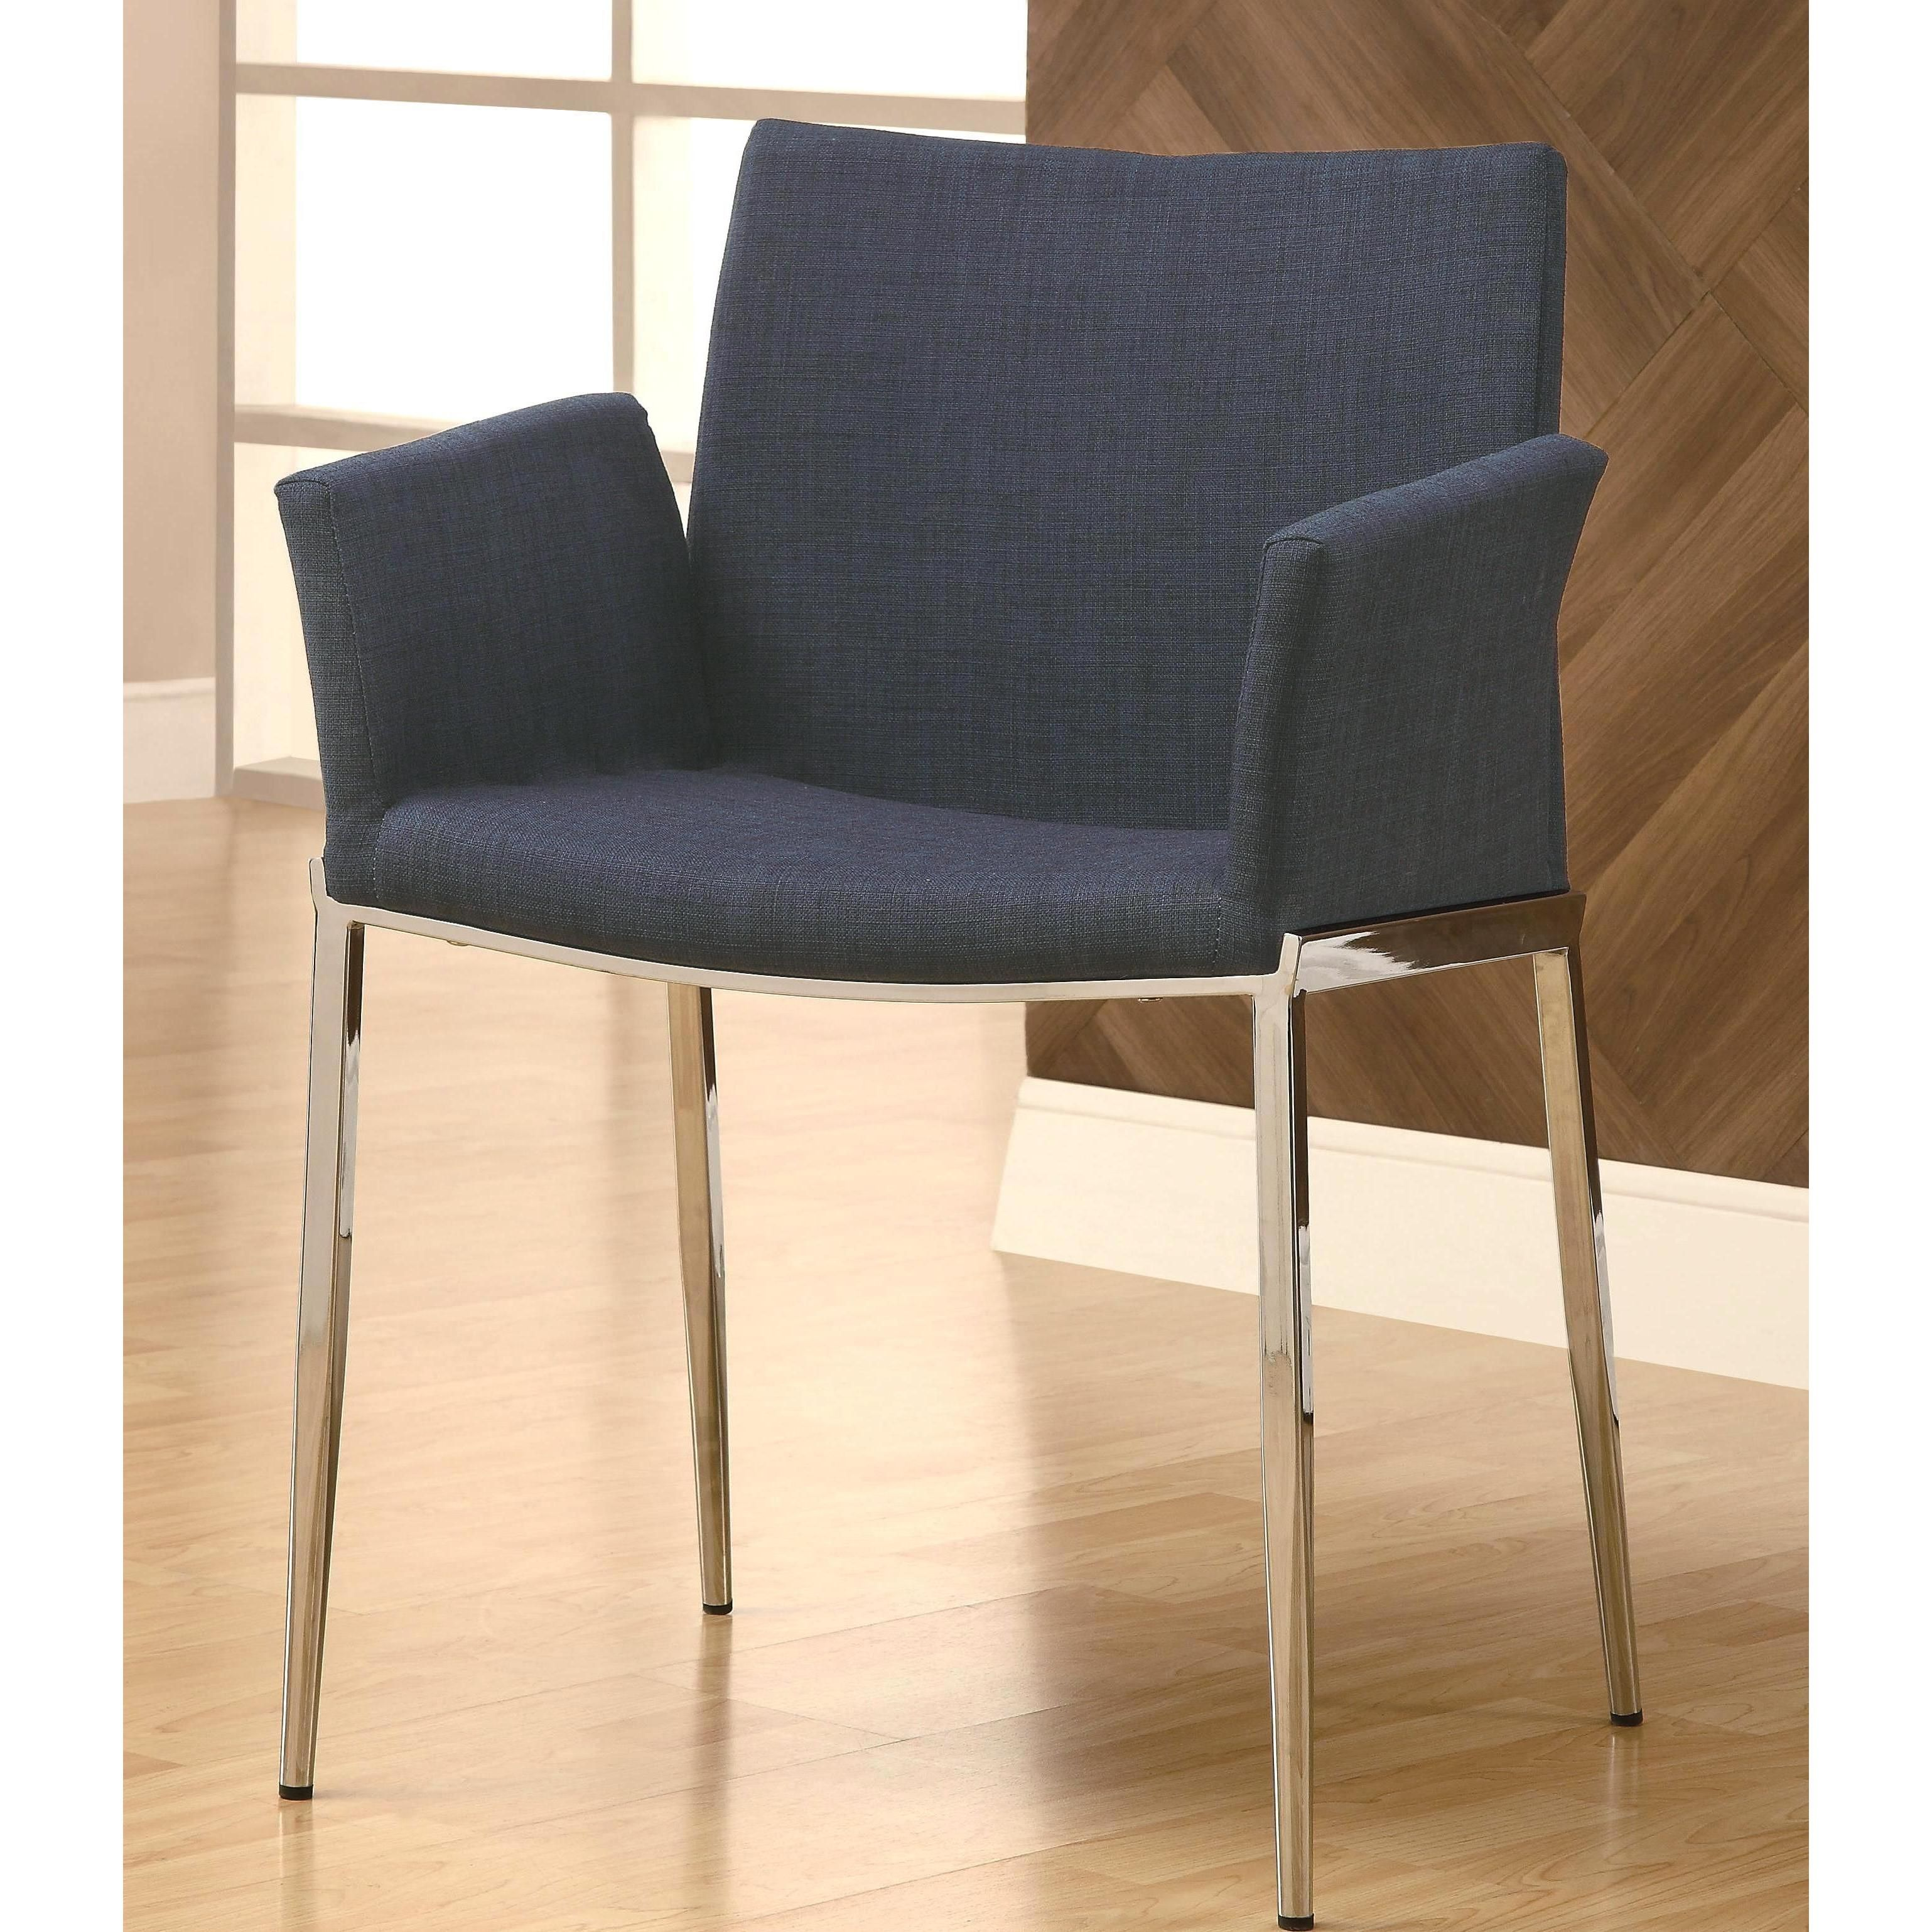 Mcguire Upholstered Dining Chairs with Chrome Legs Set of 2